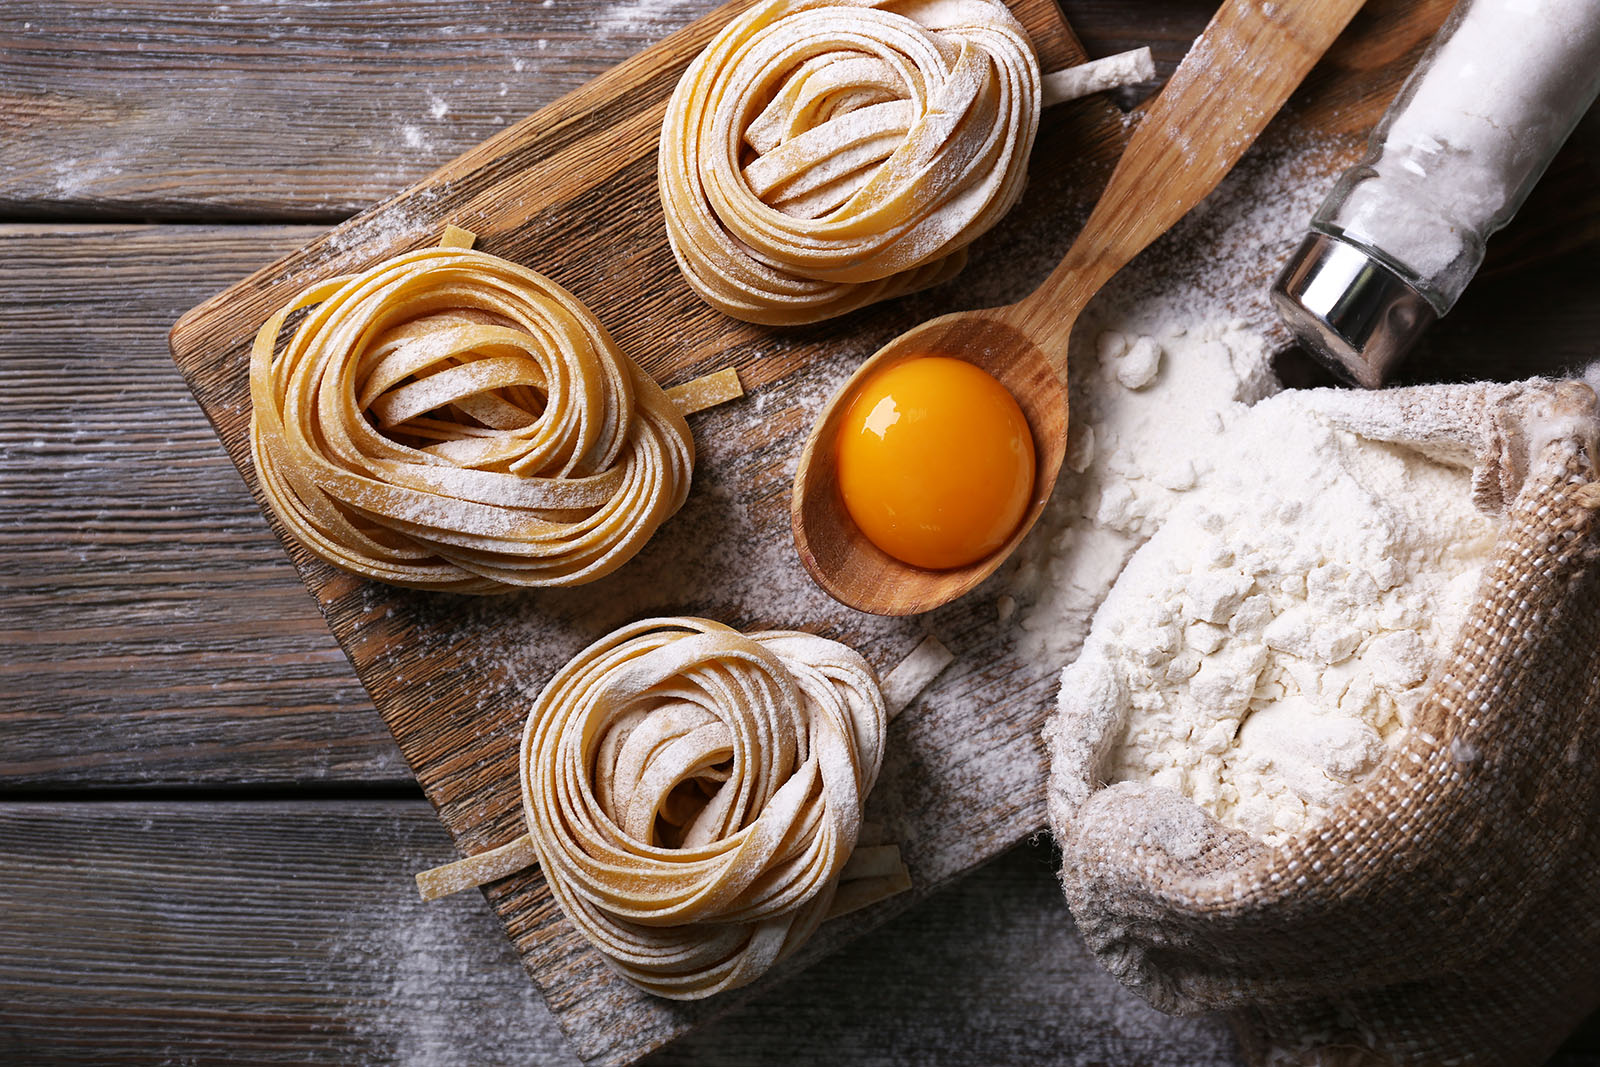 Raw homemade pasta and ingredients for pasta on wooden background; Shutterstock ID 260610080